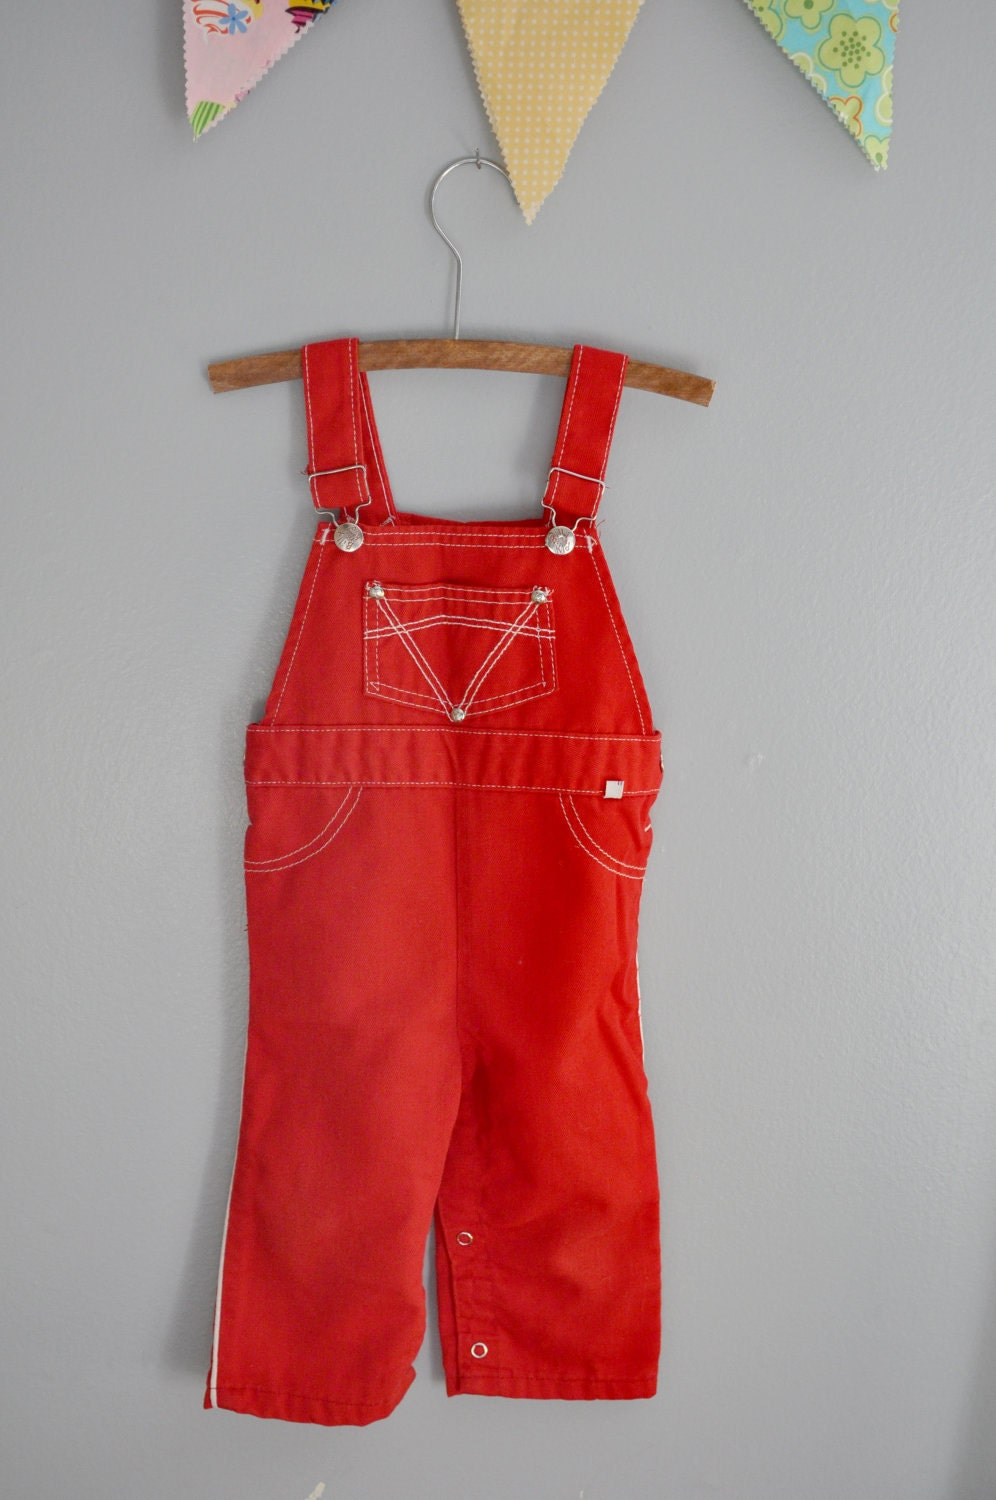 Find baby boy overalls that are durable & comfy at OshKosh. Get free shipping on all styles: little boys' overalls in denim, khaki & more at distrib-wq9rfuqq.tk